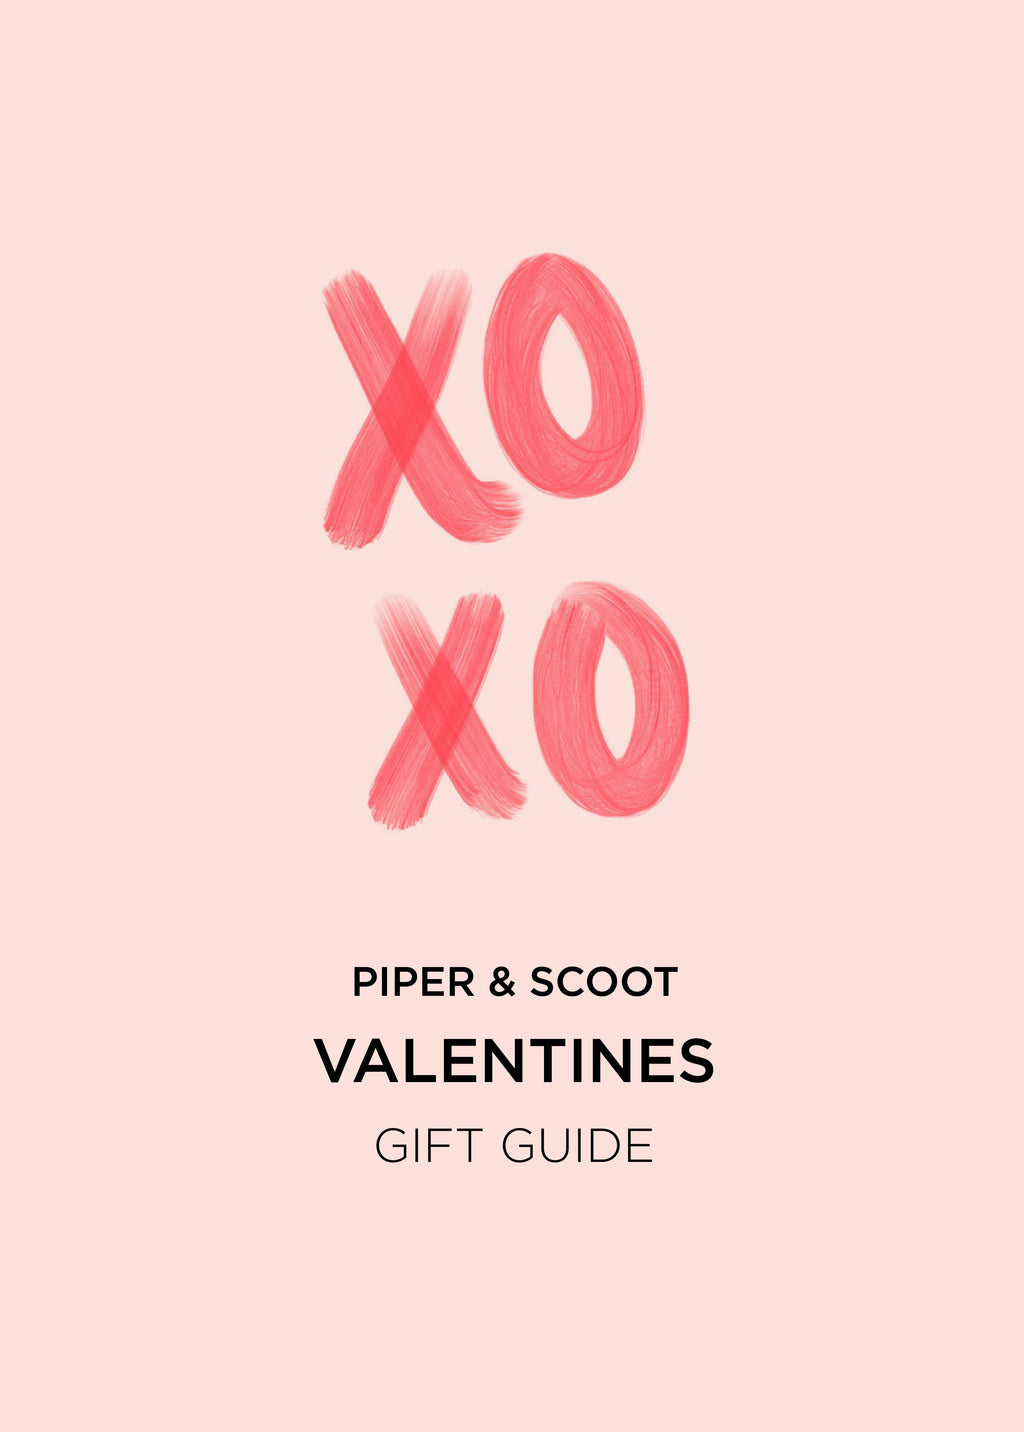 P.S. Valentine's Day Gift Guide